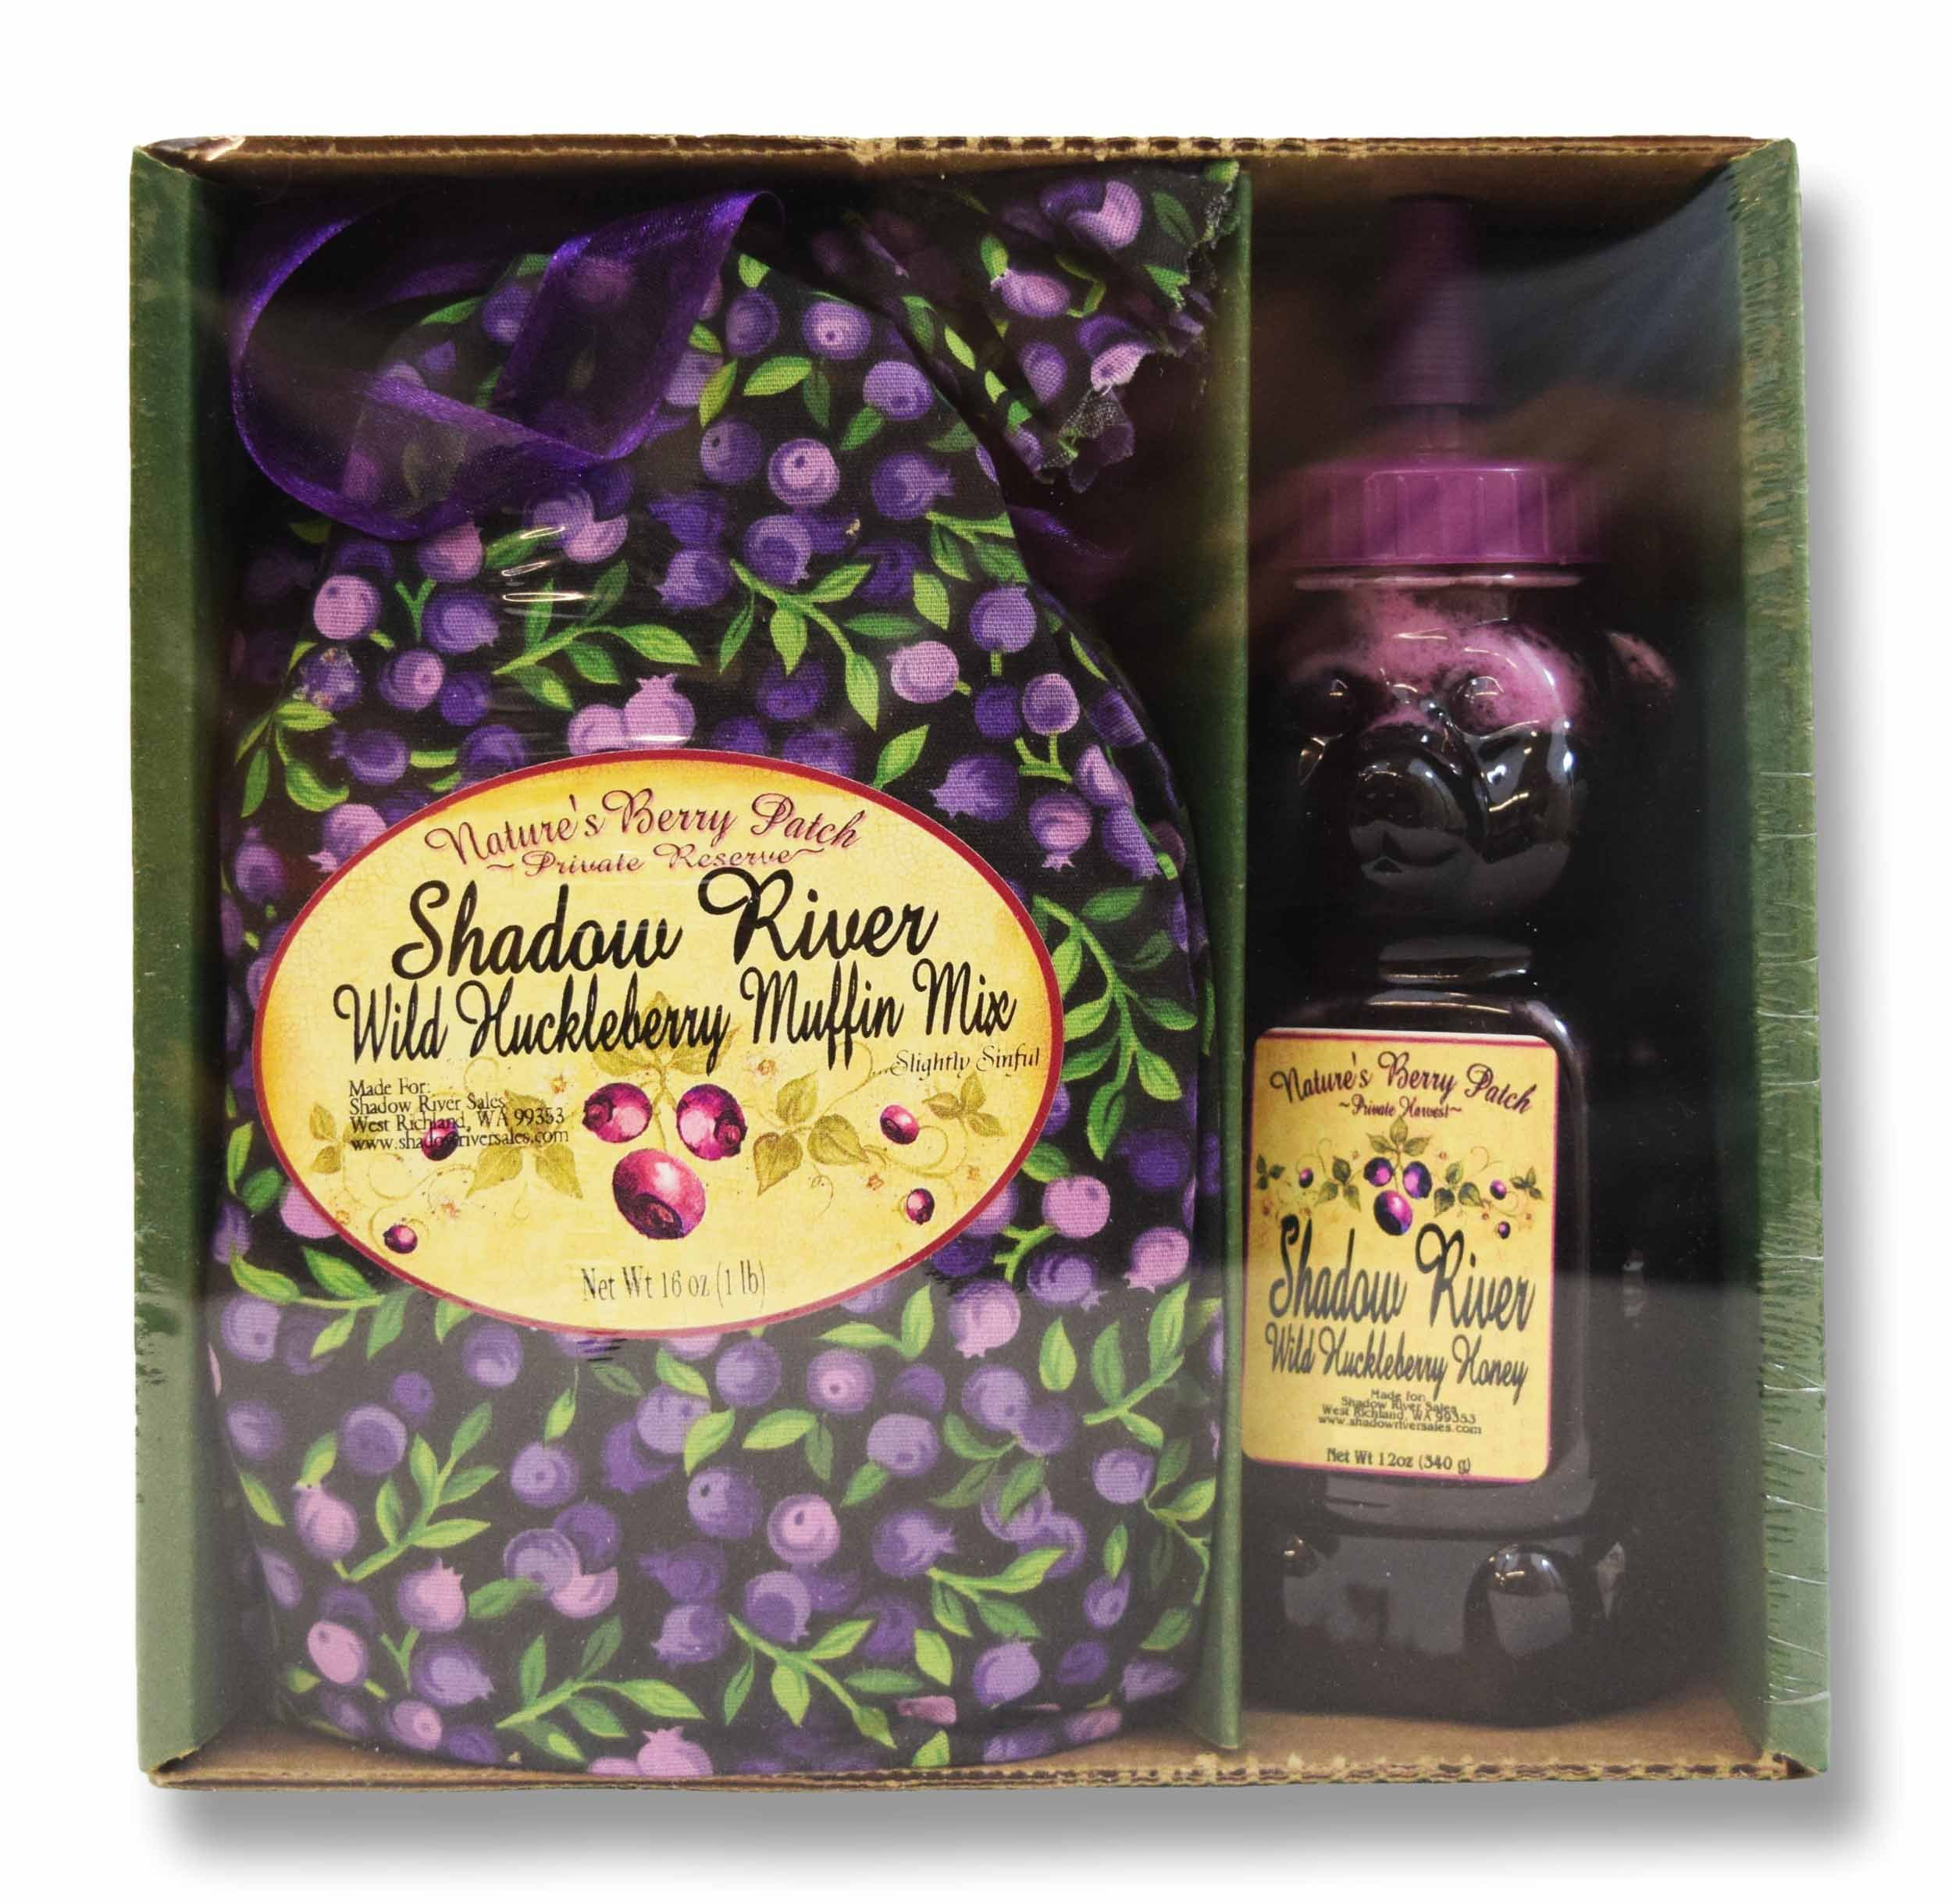 Shadow River Wild Huckleberry Gourmet Boxed Gift Set Muffin Mix & 12 oz Honey